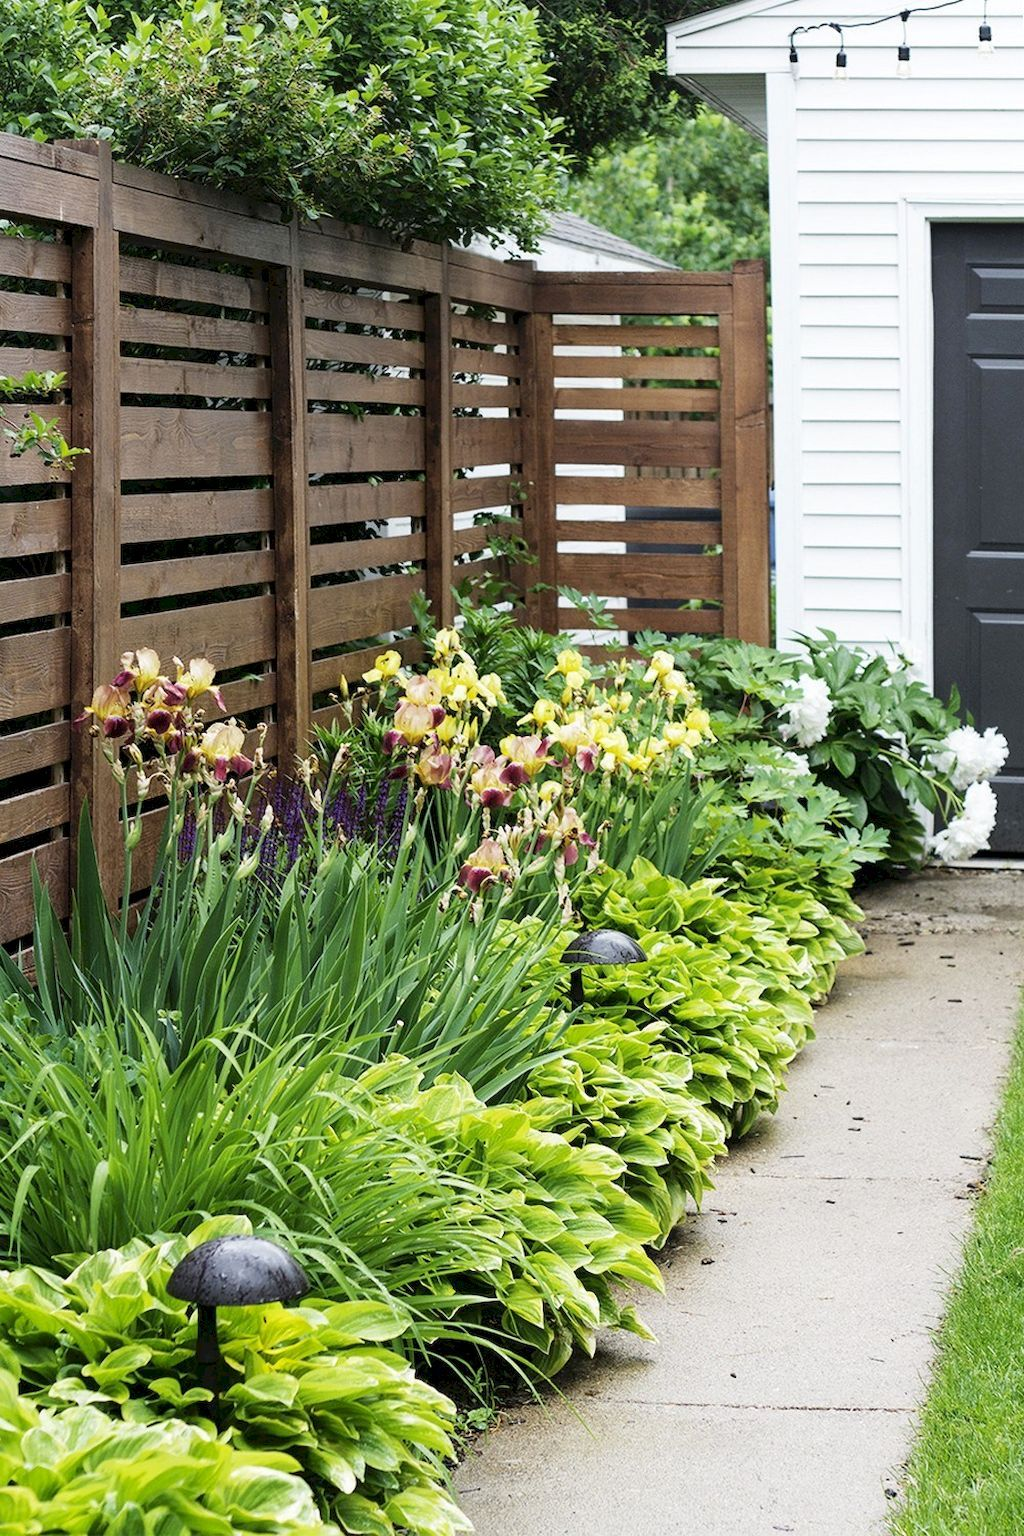 Cheap Landscaping Ideas Backyard Landscaping Yard: 42 Cheap Landscaping Ideas For Your Front Yard That Will Inspire You